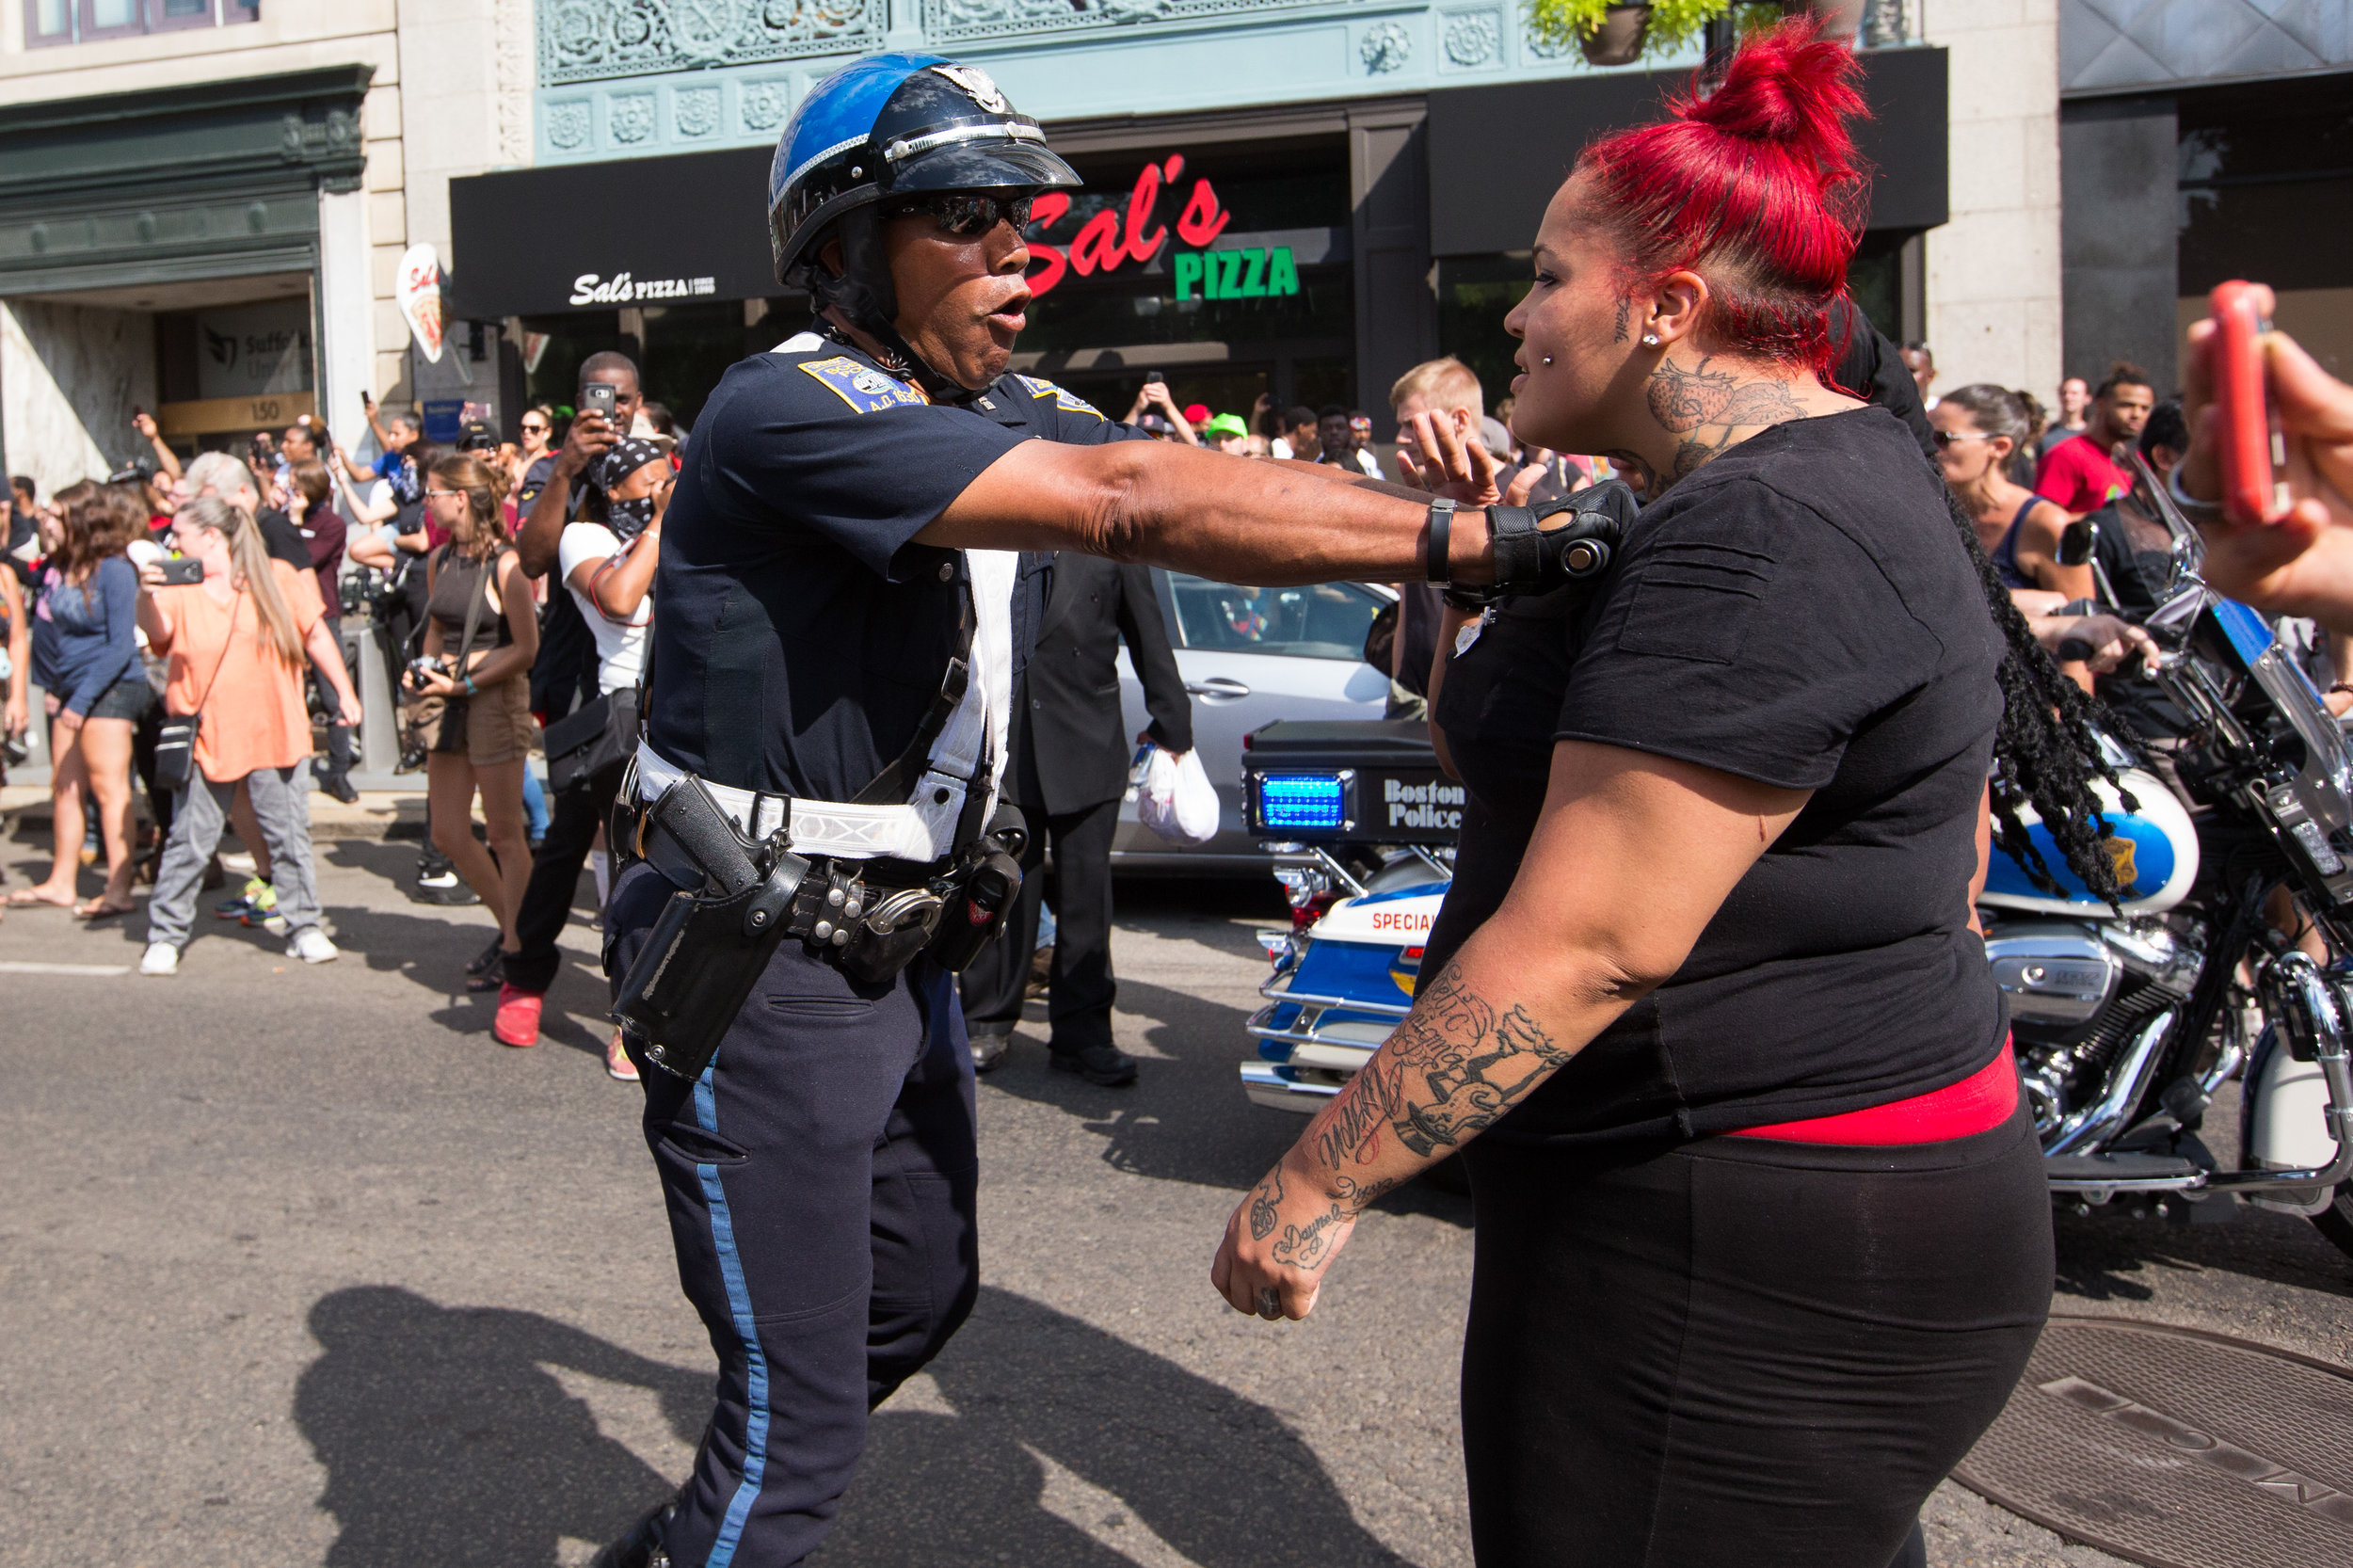 A Boston Police officer pushes back counter-protesters on Boylston Street in Boston, Massachusetts on August 19, 2017. The counter-protesters were gathered in response to an 'alt-right' 'Free Speech' rally.